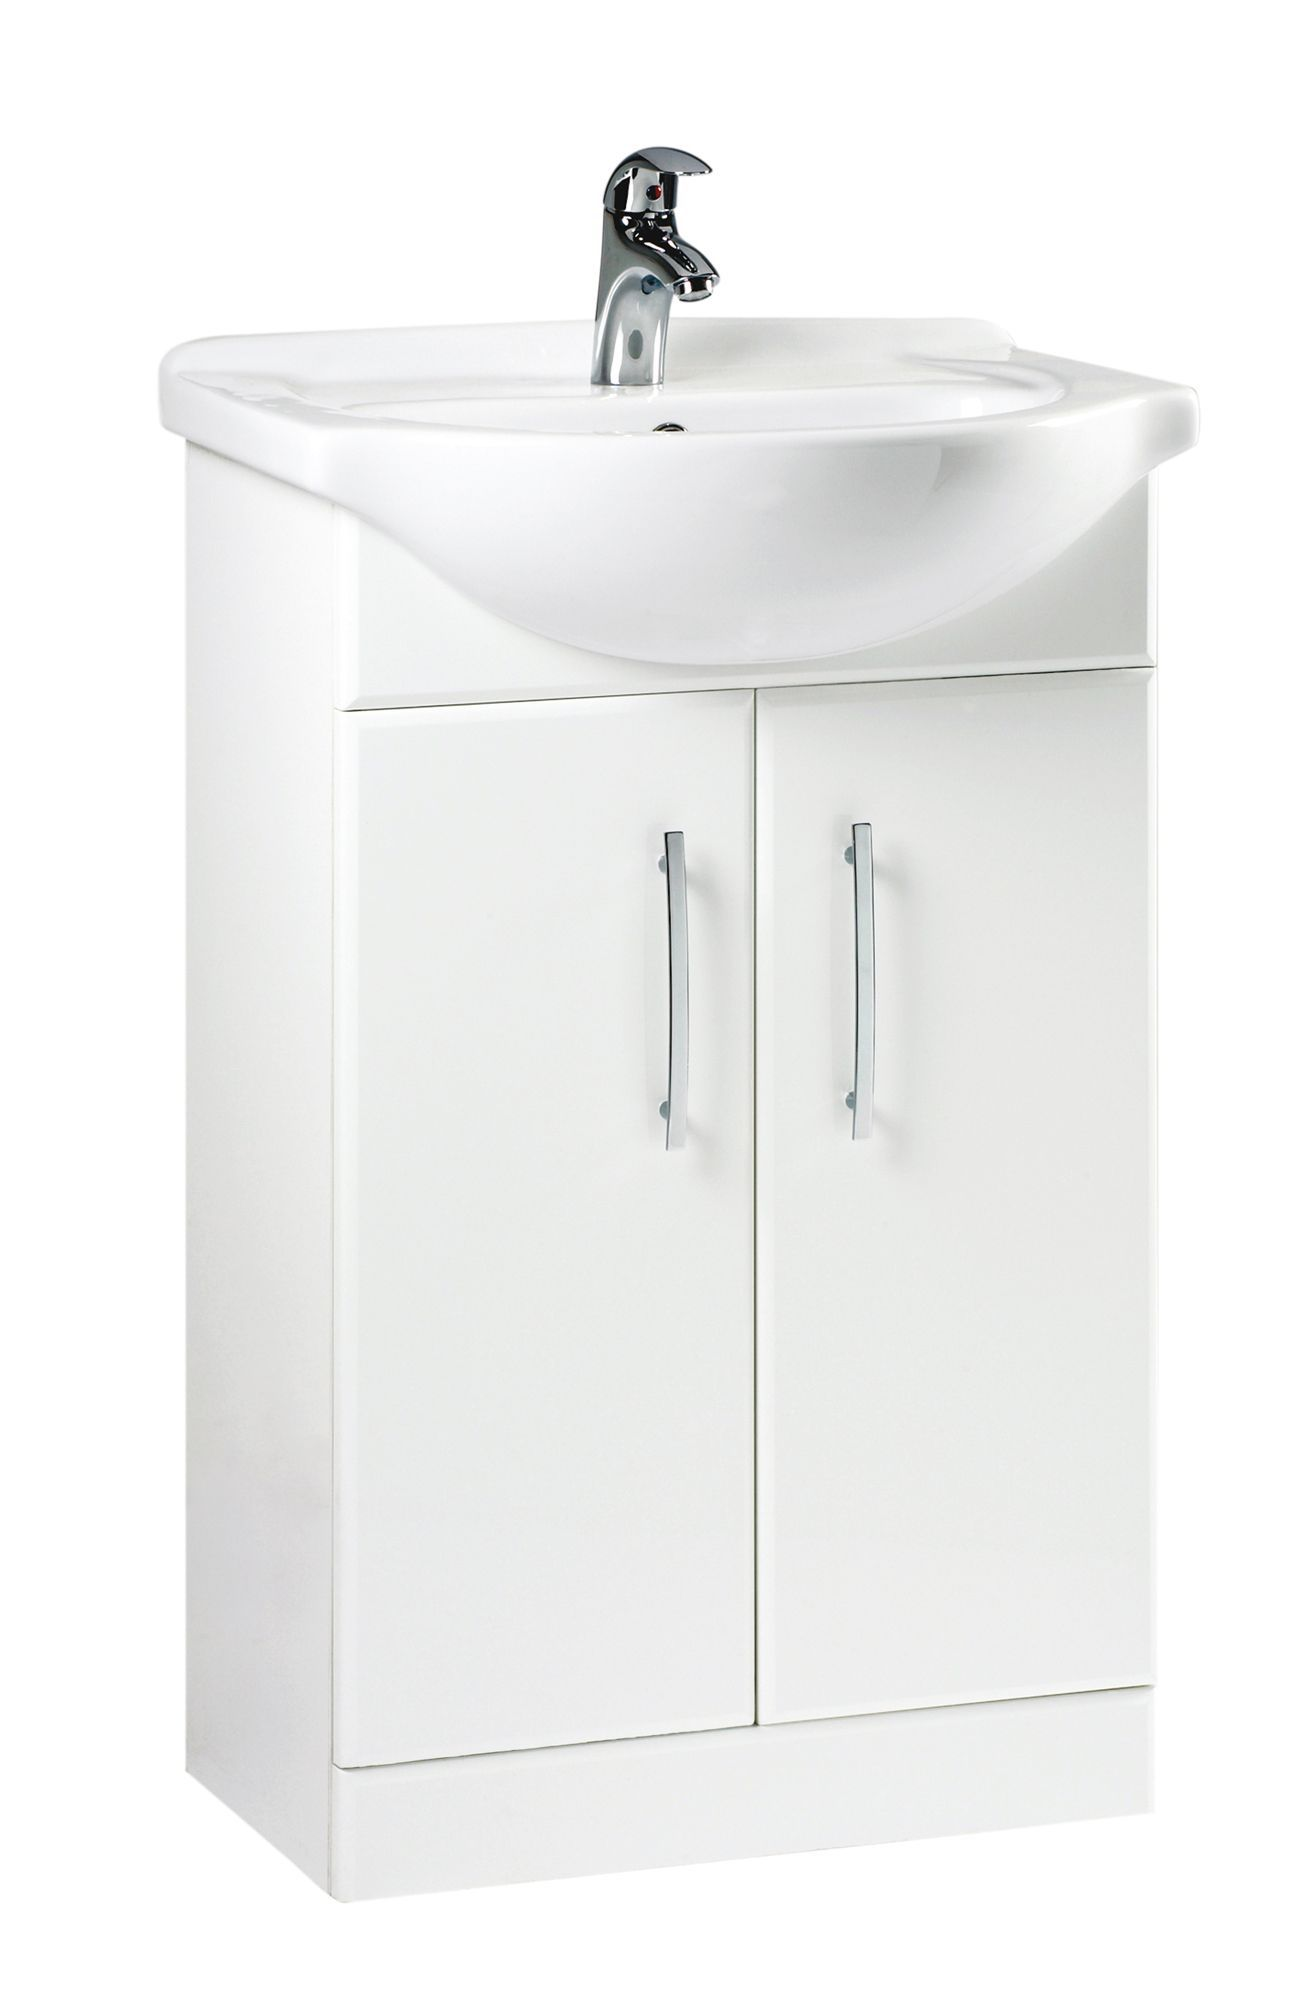 Bathroom wall cabinets b q cabinets matttroy for Bathroom cabinets tesco